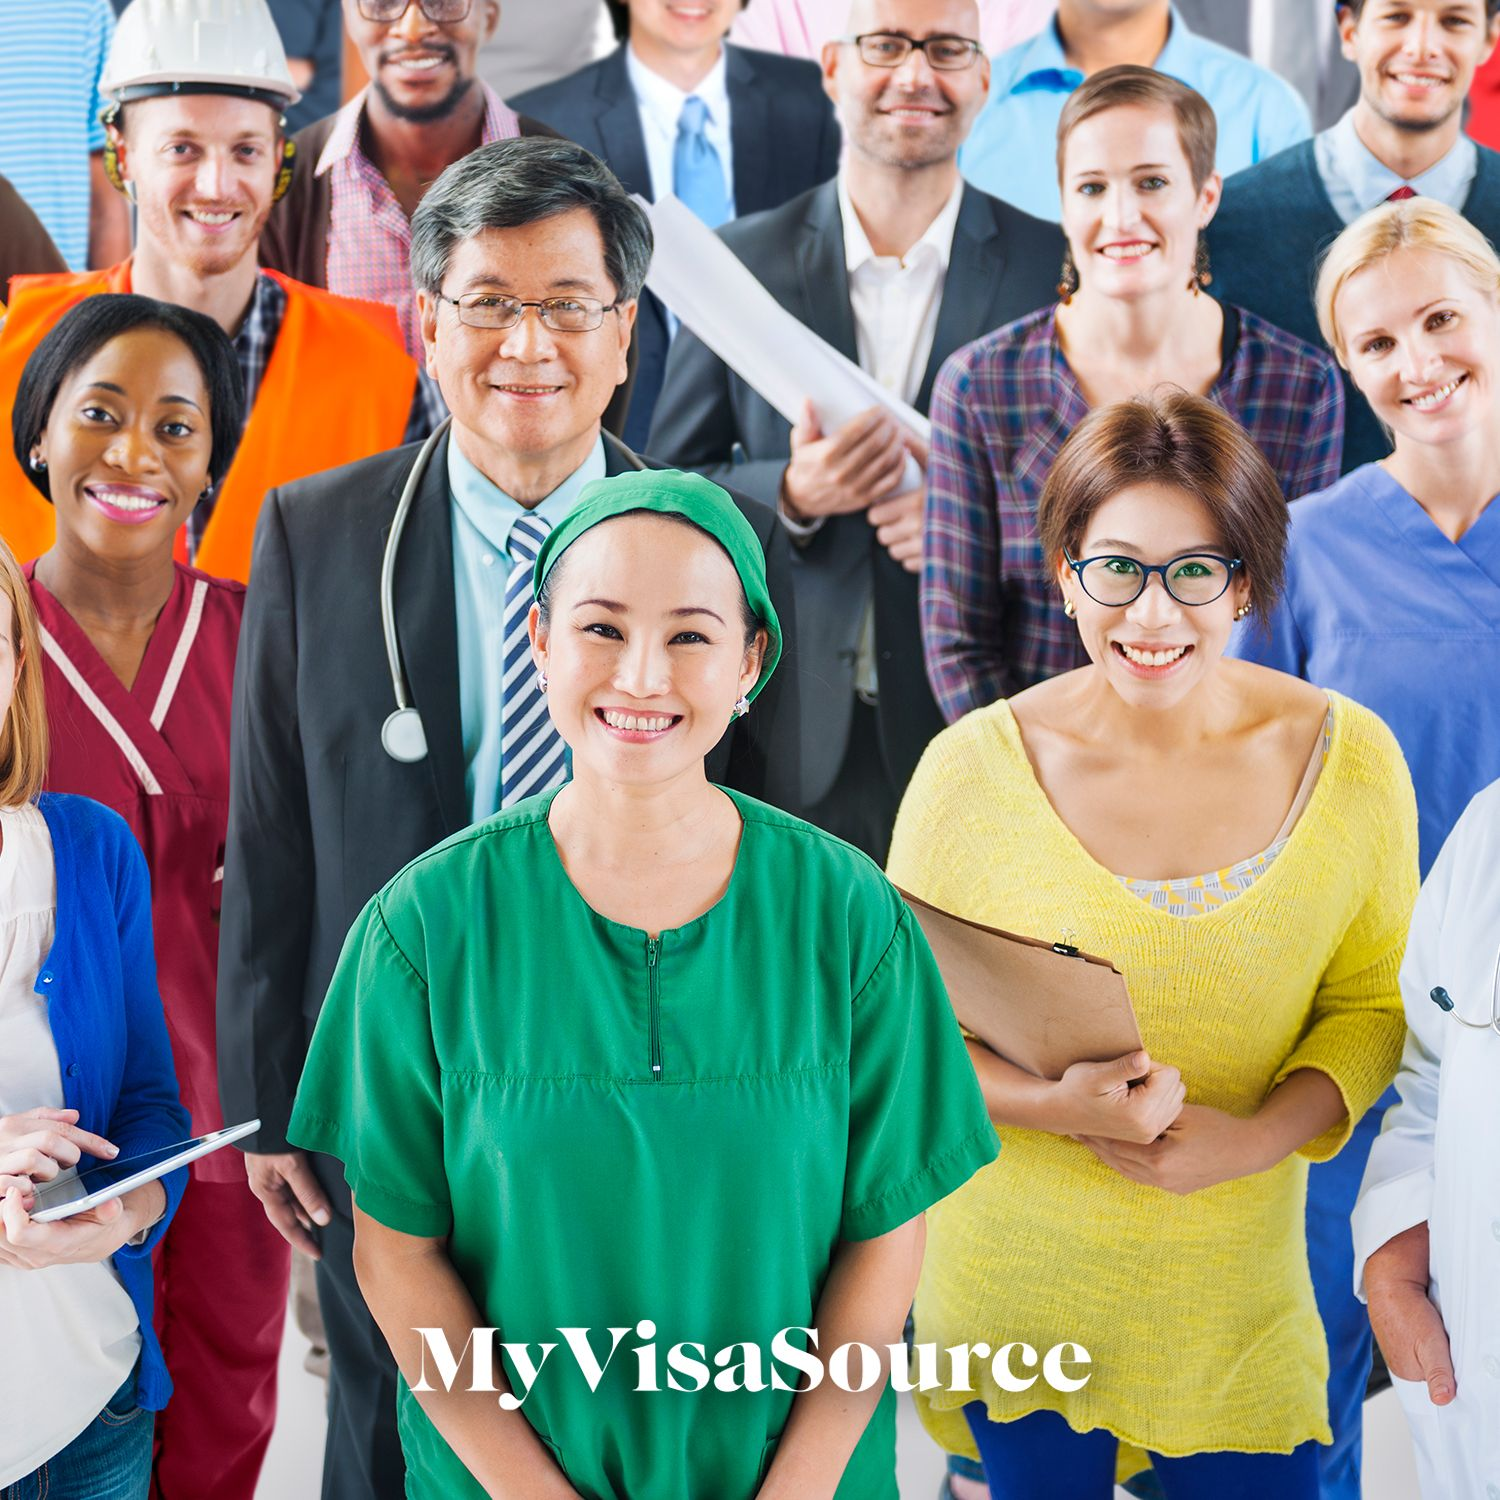 crowd of different job types of people my visa source